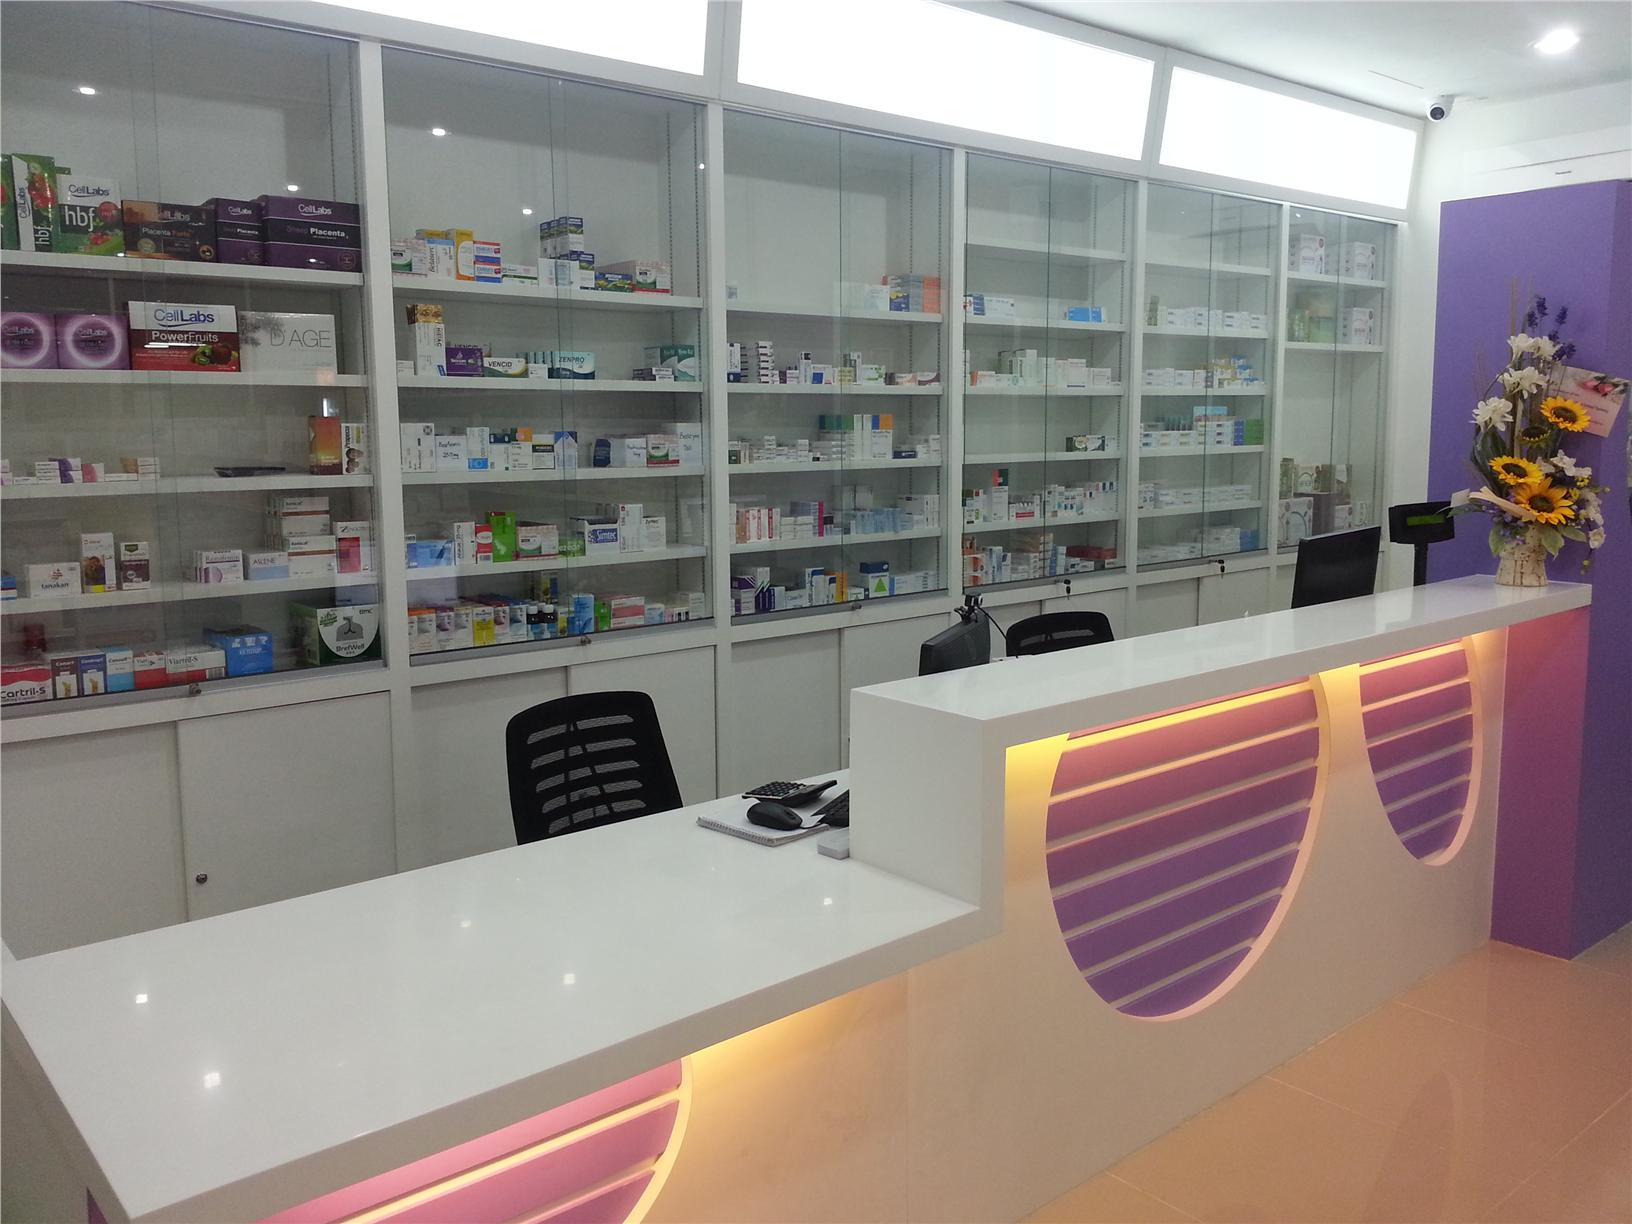 Pharmacy / Office Display Cabinet (end 7/22/2015 10:15 PM)